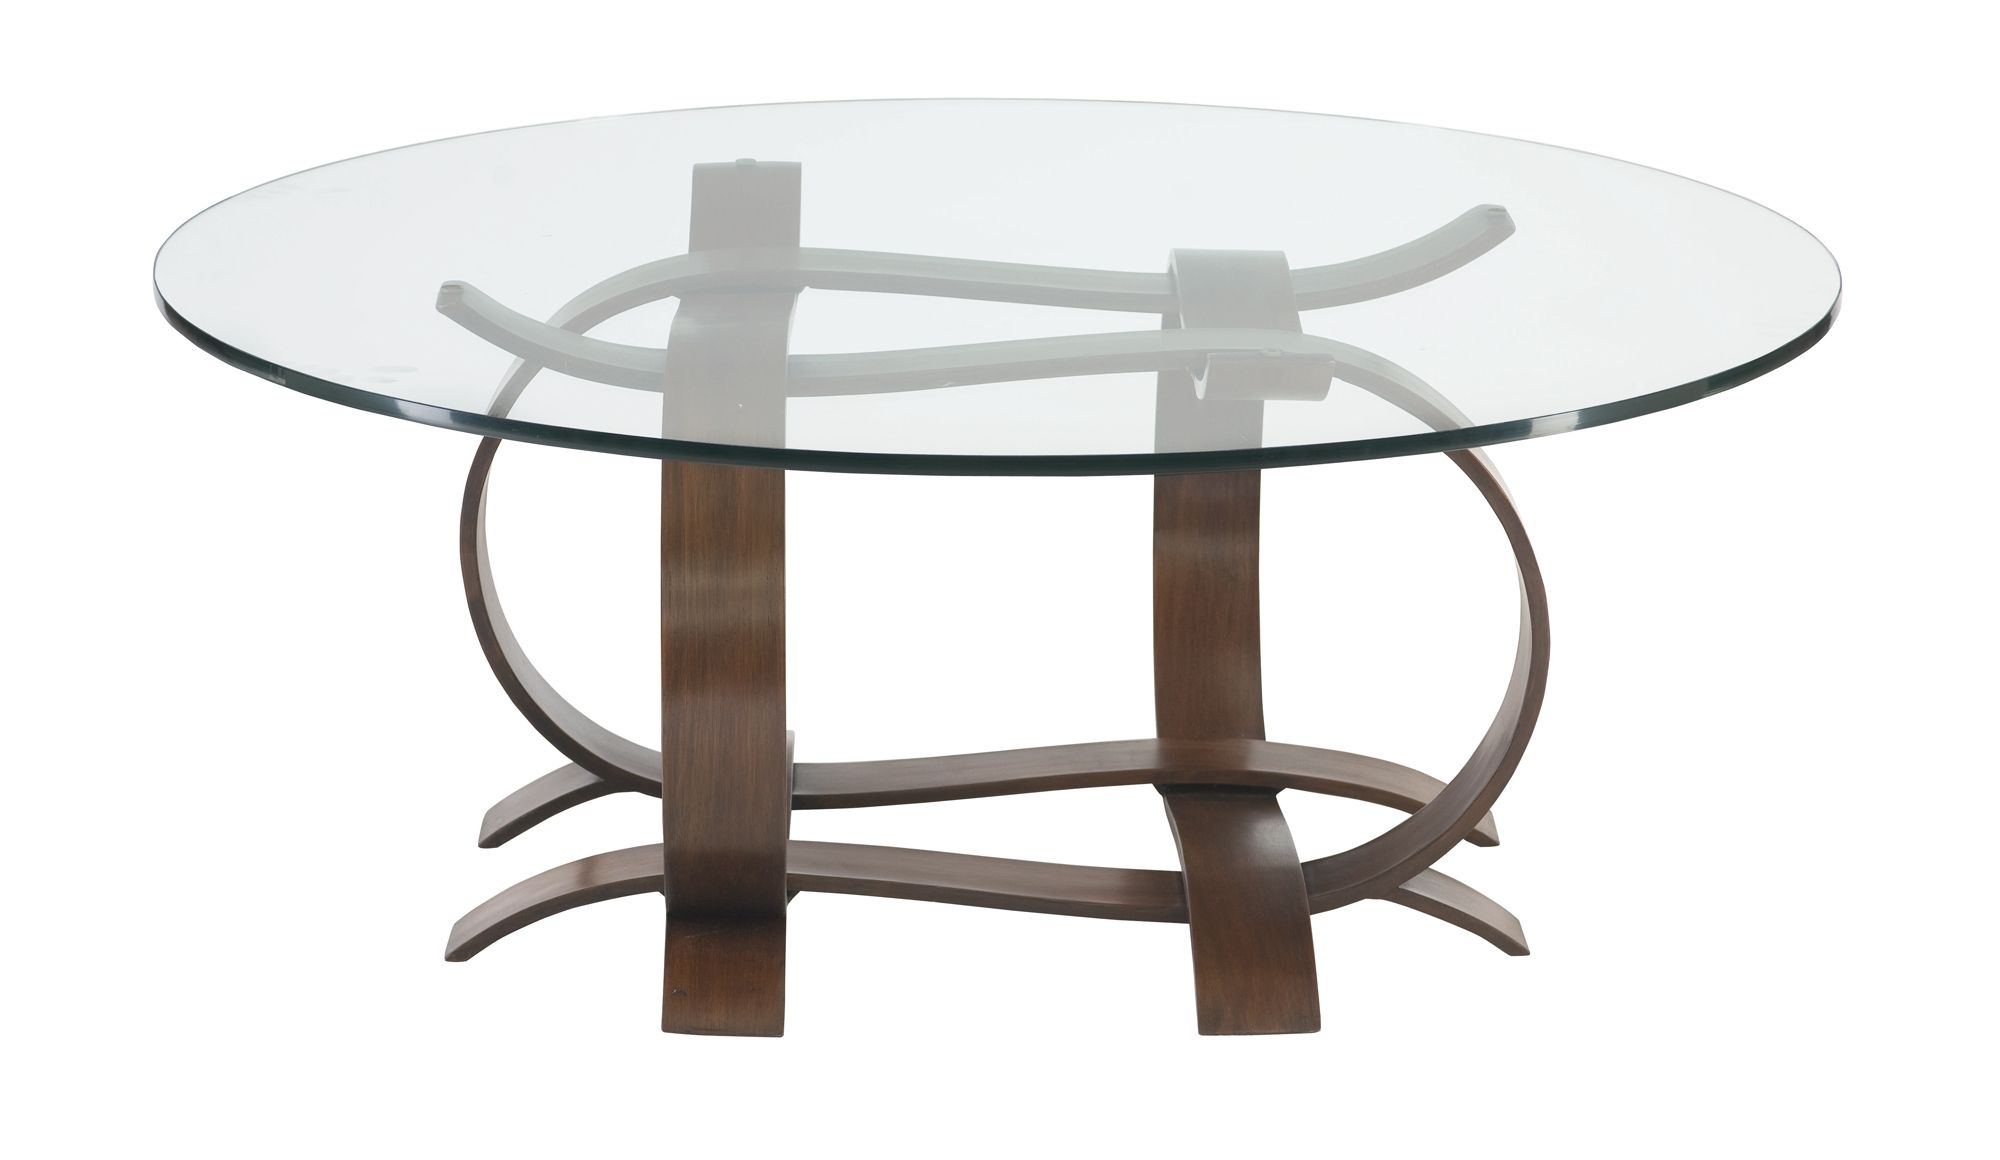 353 010 998 044 Acadia Cocktail Table Bernhardt Dia 44 H 17